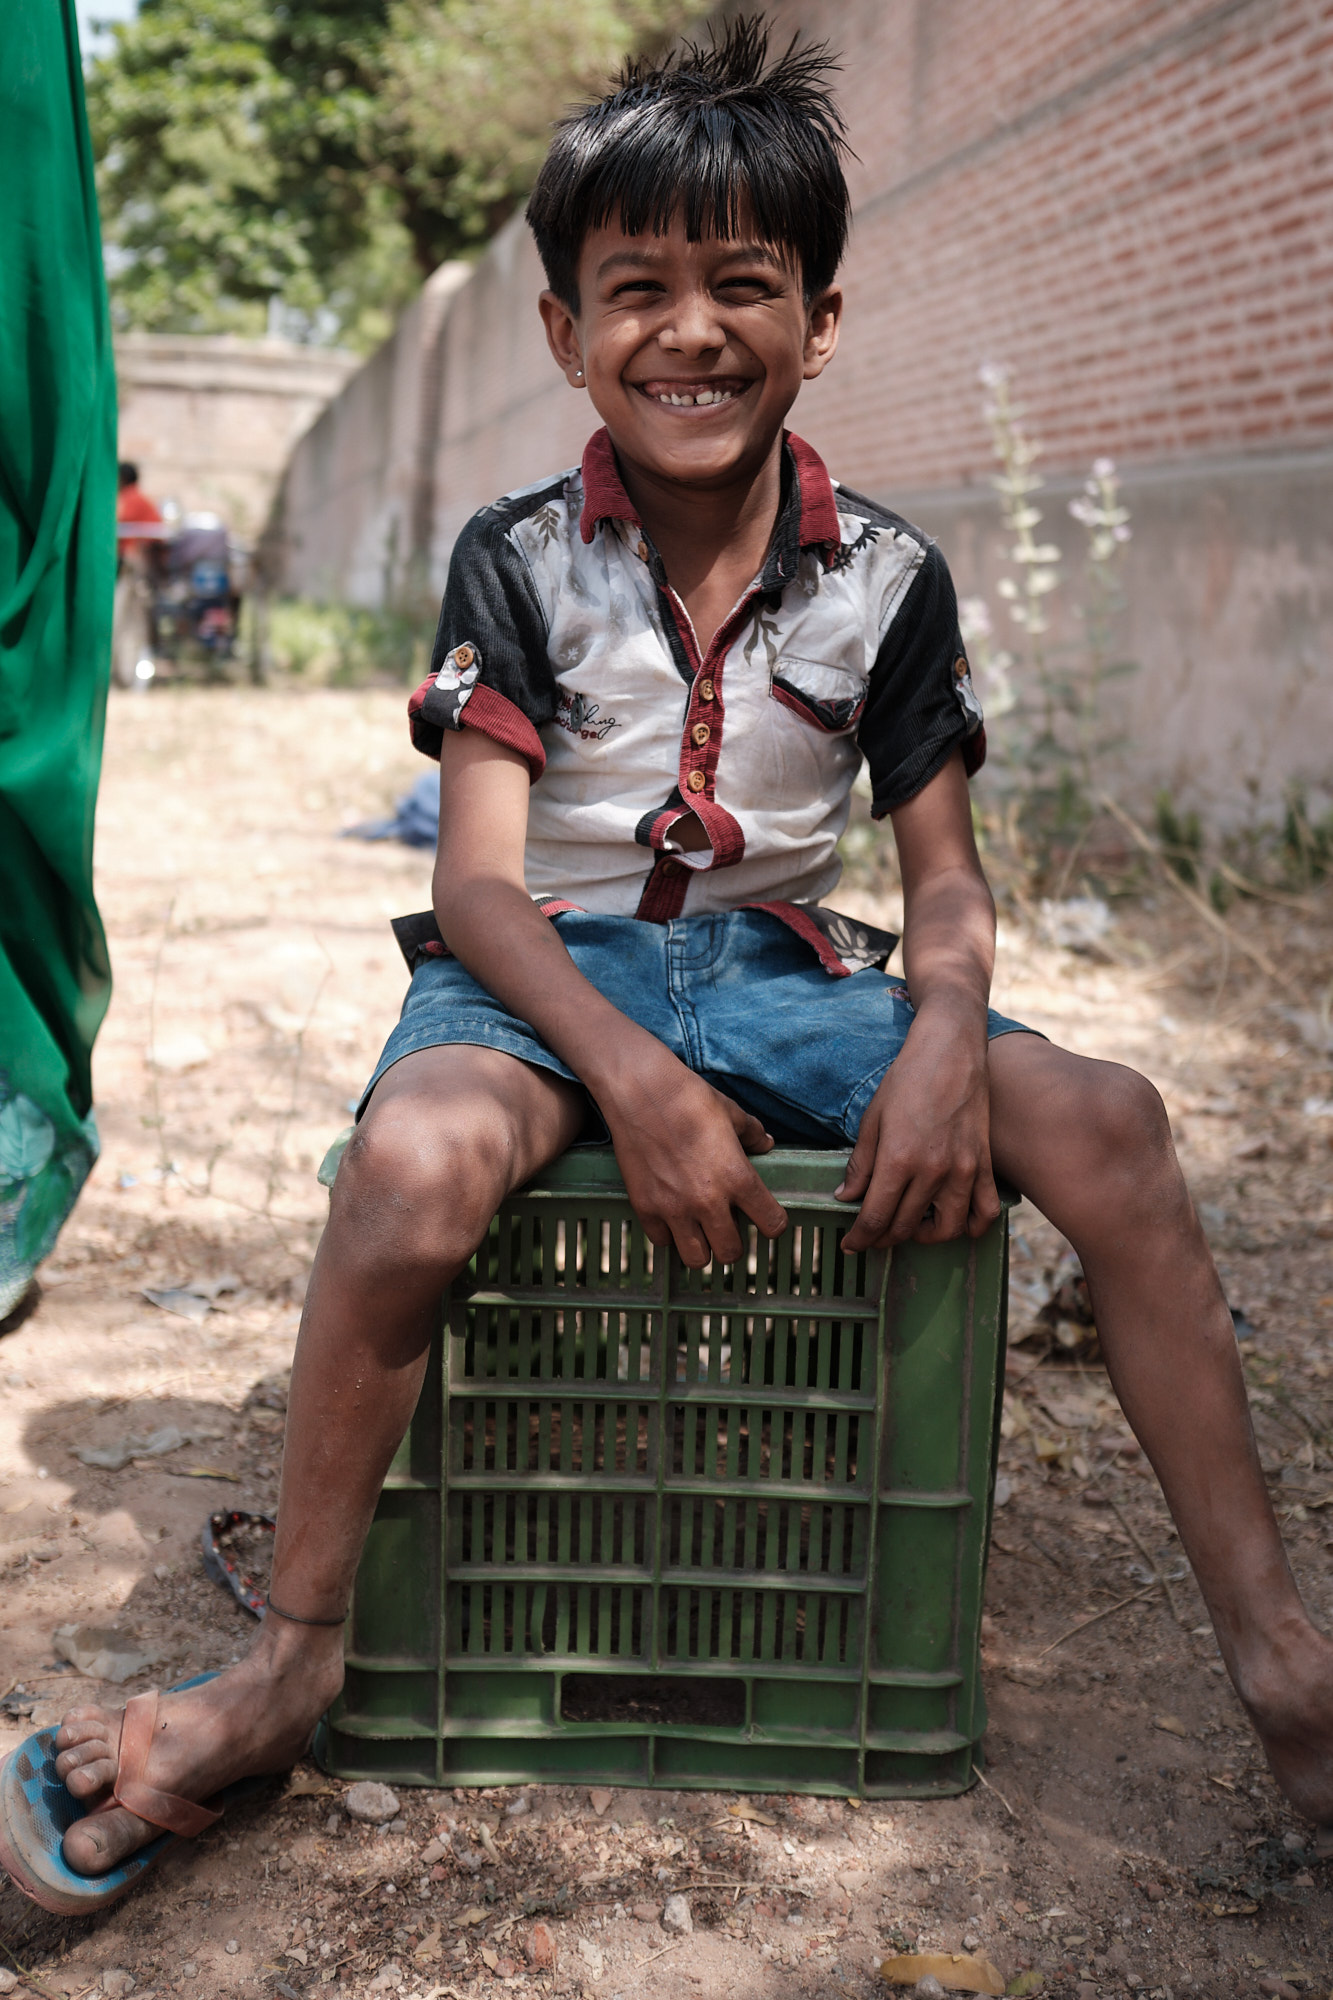 A boy with beautiful smile photographed in Ahmedabad